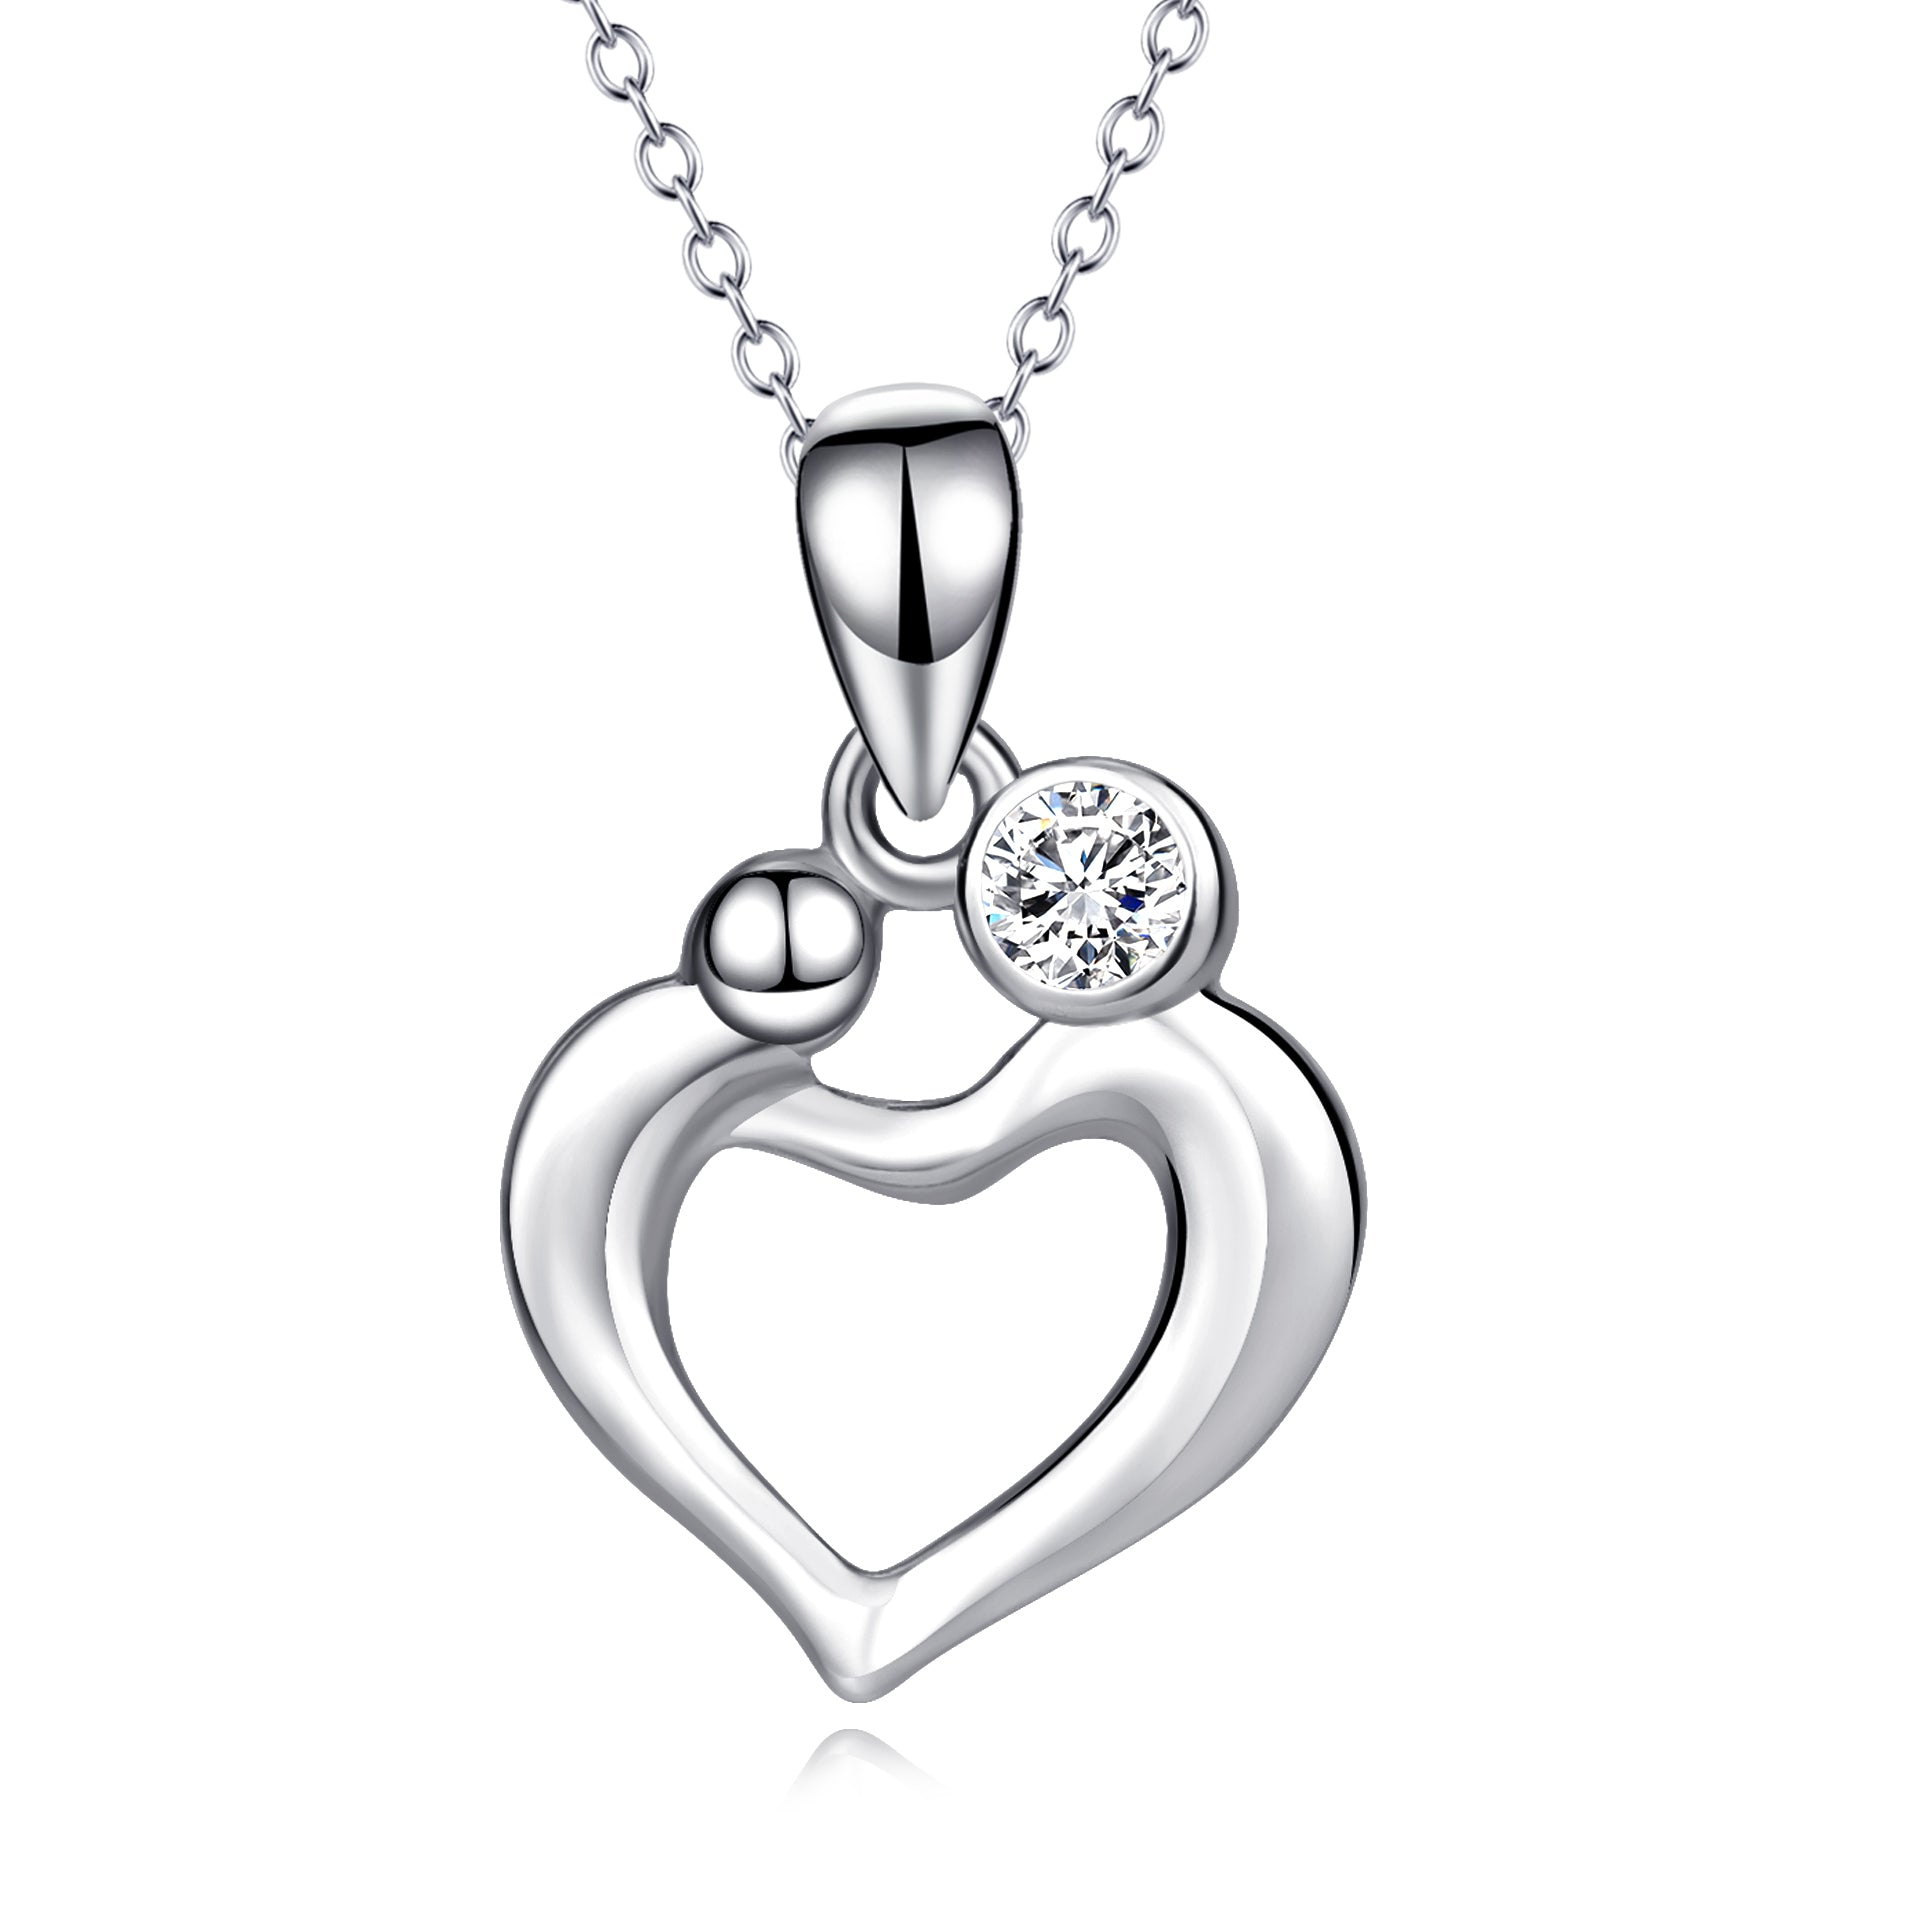 Mom and Kid Hug Necklace Heart Shape Loving Silver Necklace